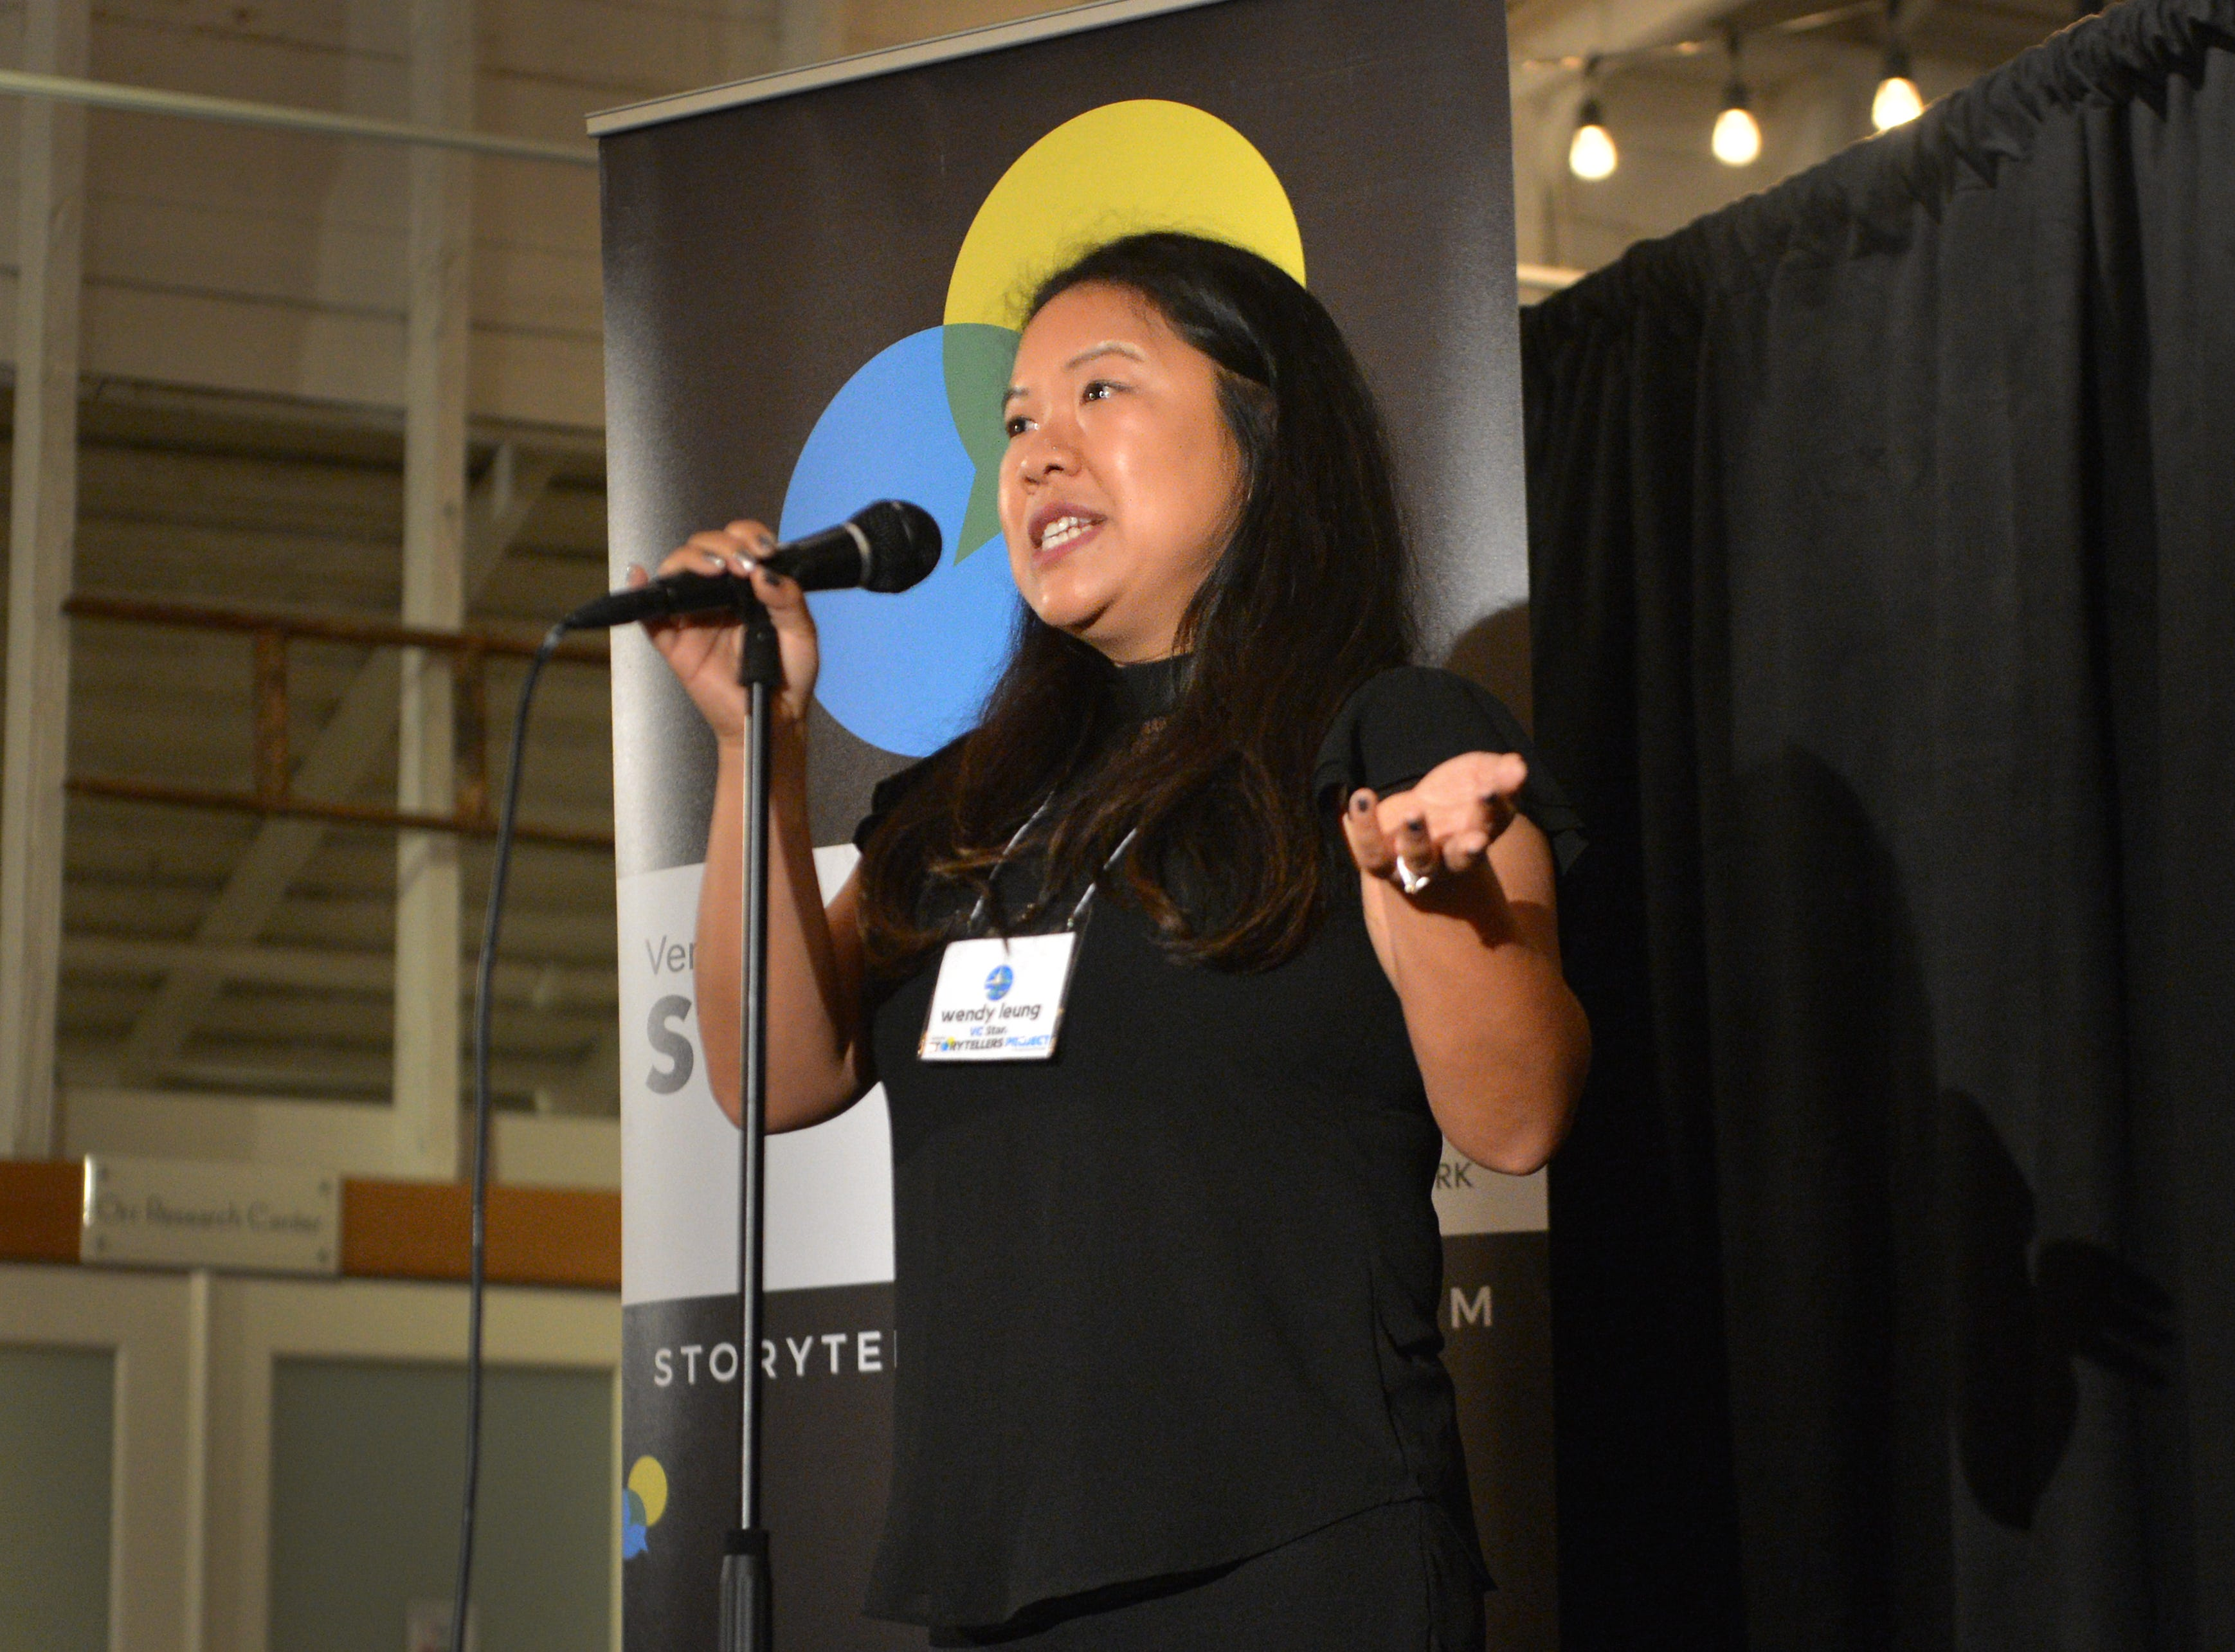 """Ventura County Star reporter Wendy Leung makes opening remarks as the emcee of the Ventura Storytellers Project event at the Museum of Ventura County Agriculture Museum on Thursday. The theme of the night was """"Away We Go."""""""